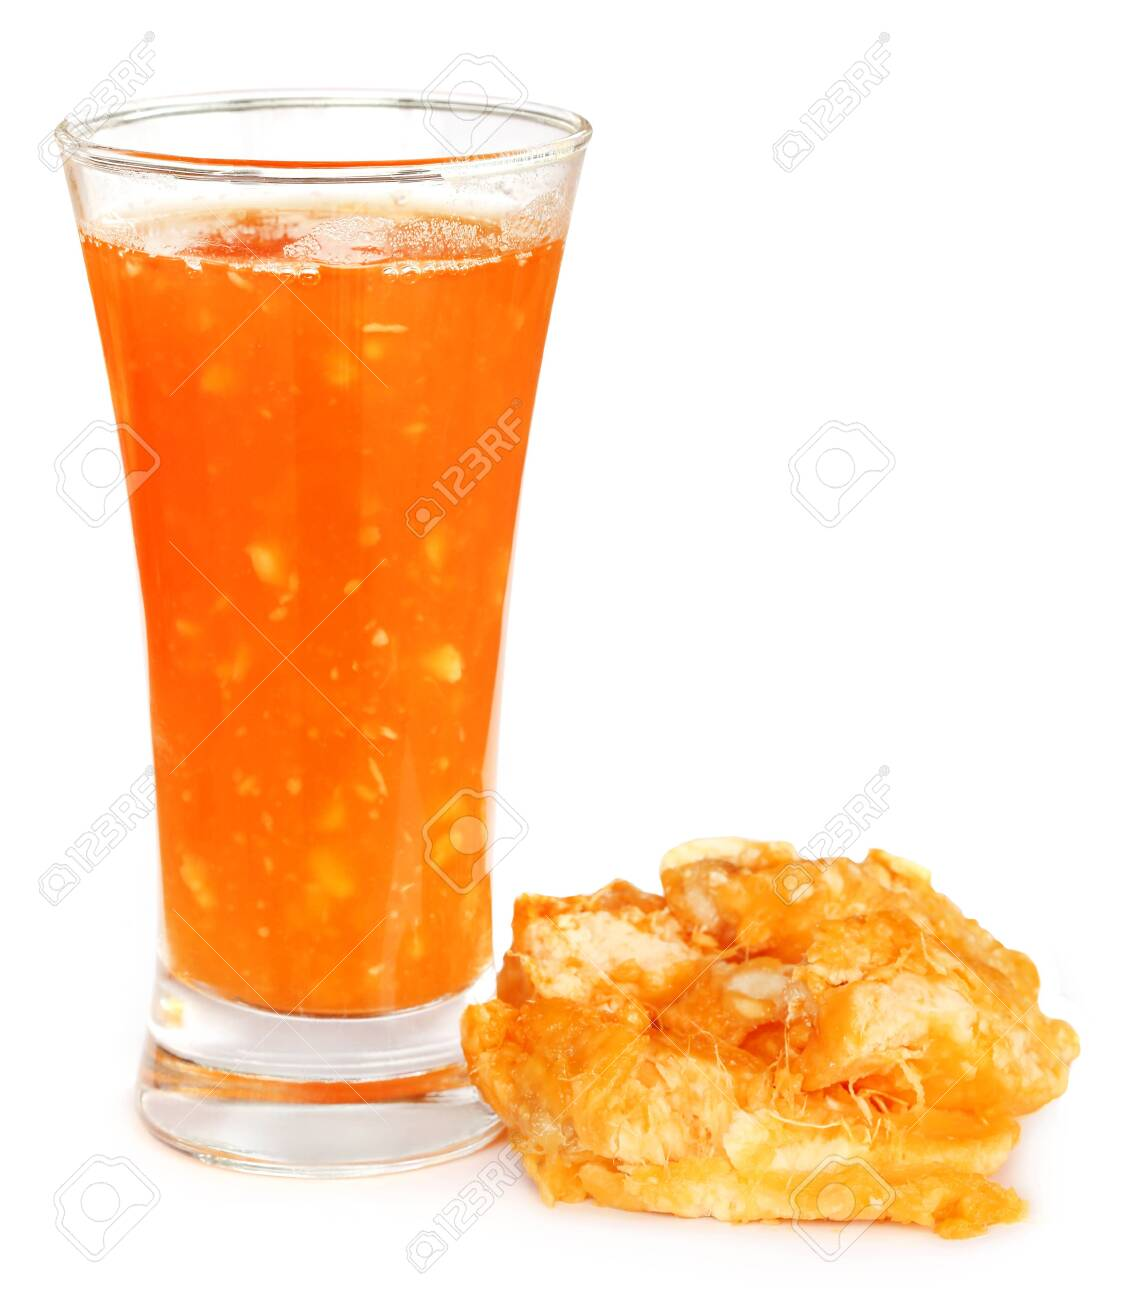 Medicinal Bael fruit with juice in a glass over white background - 124056475